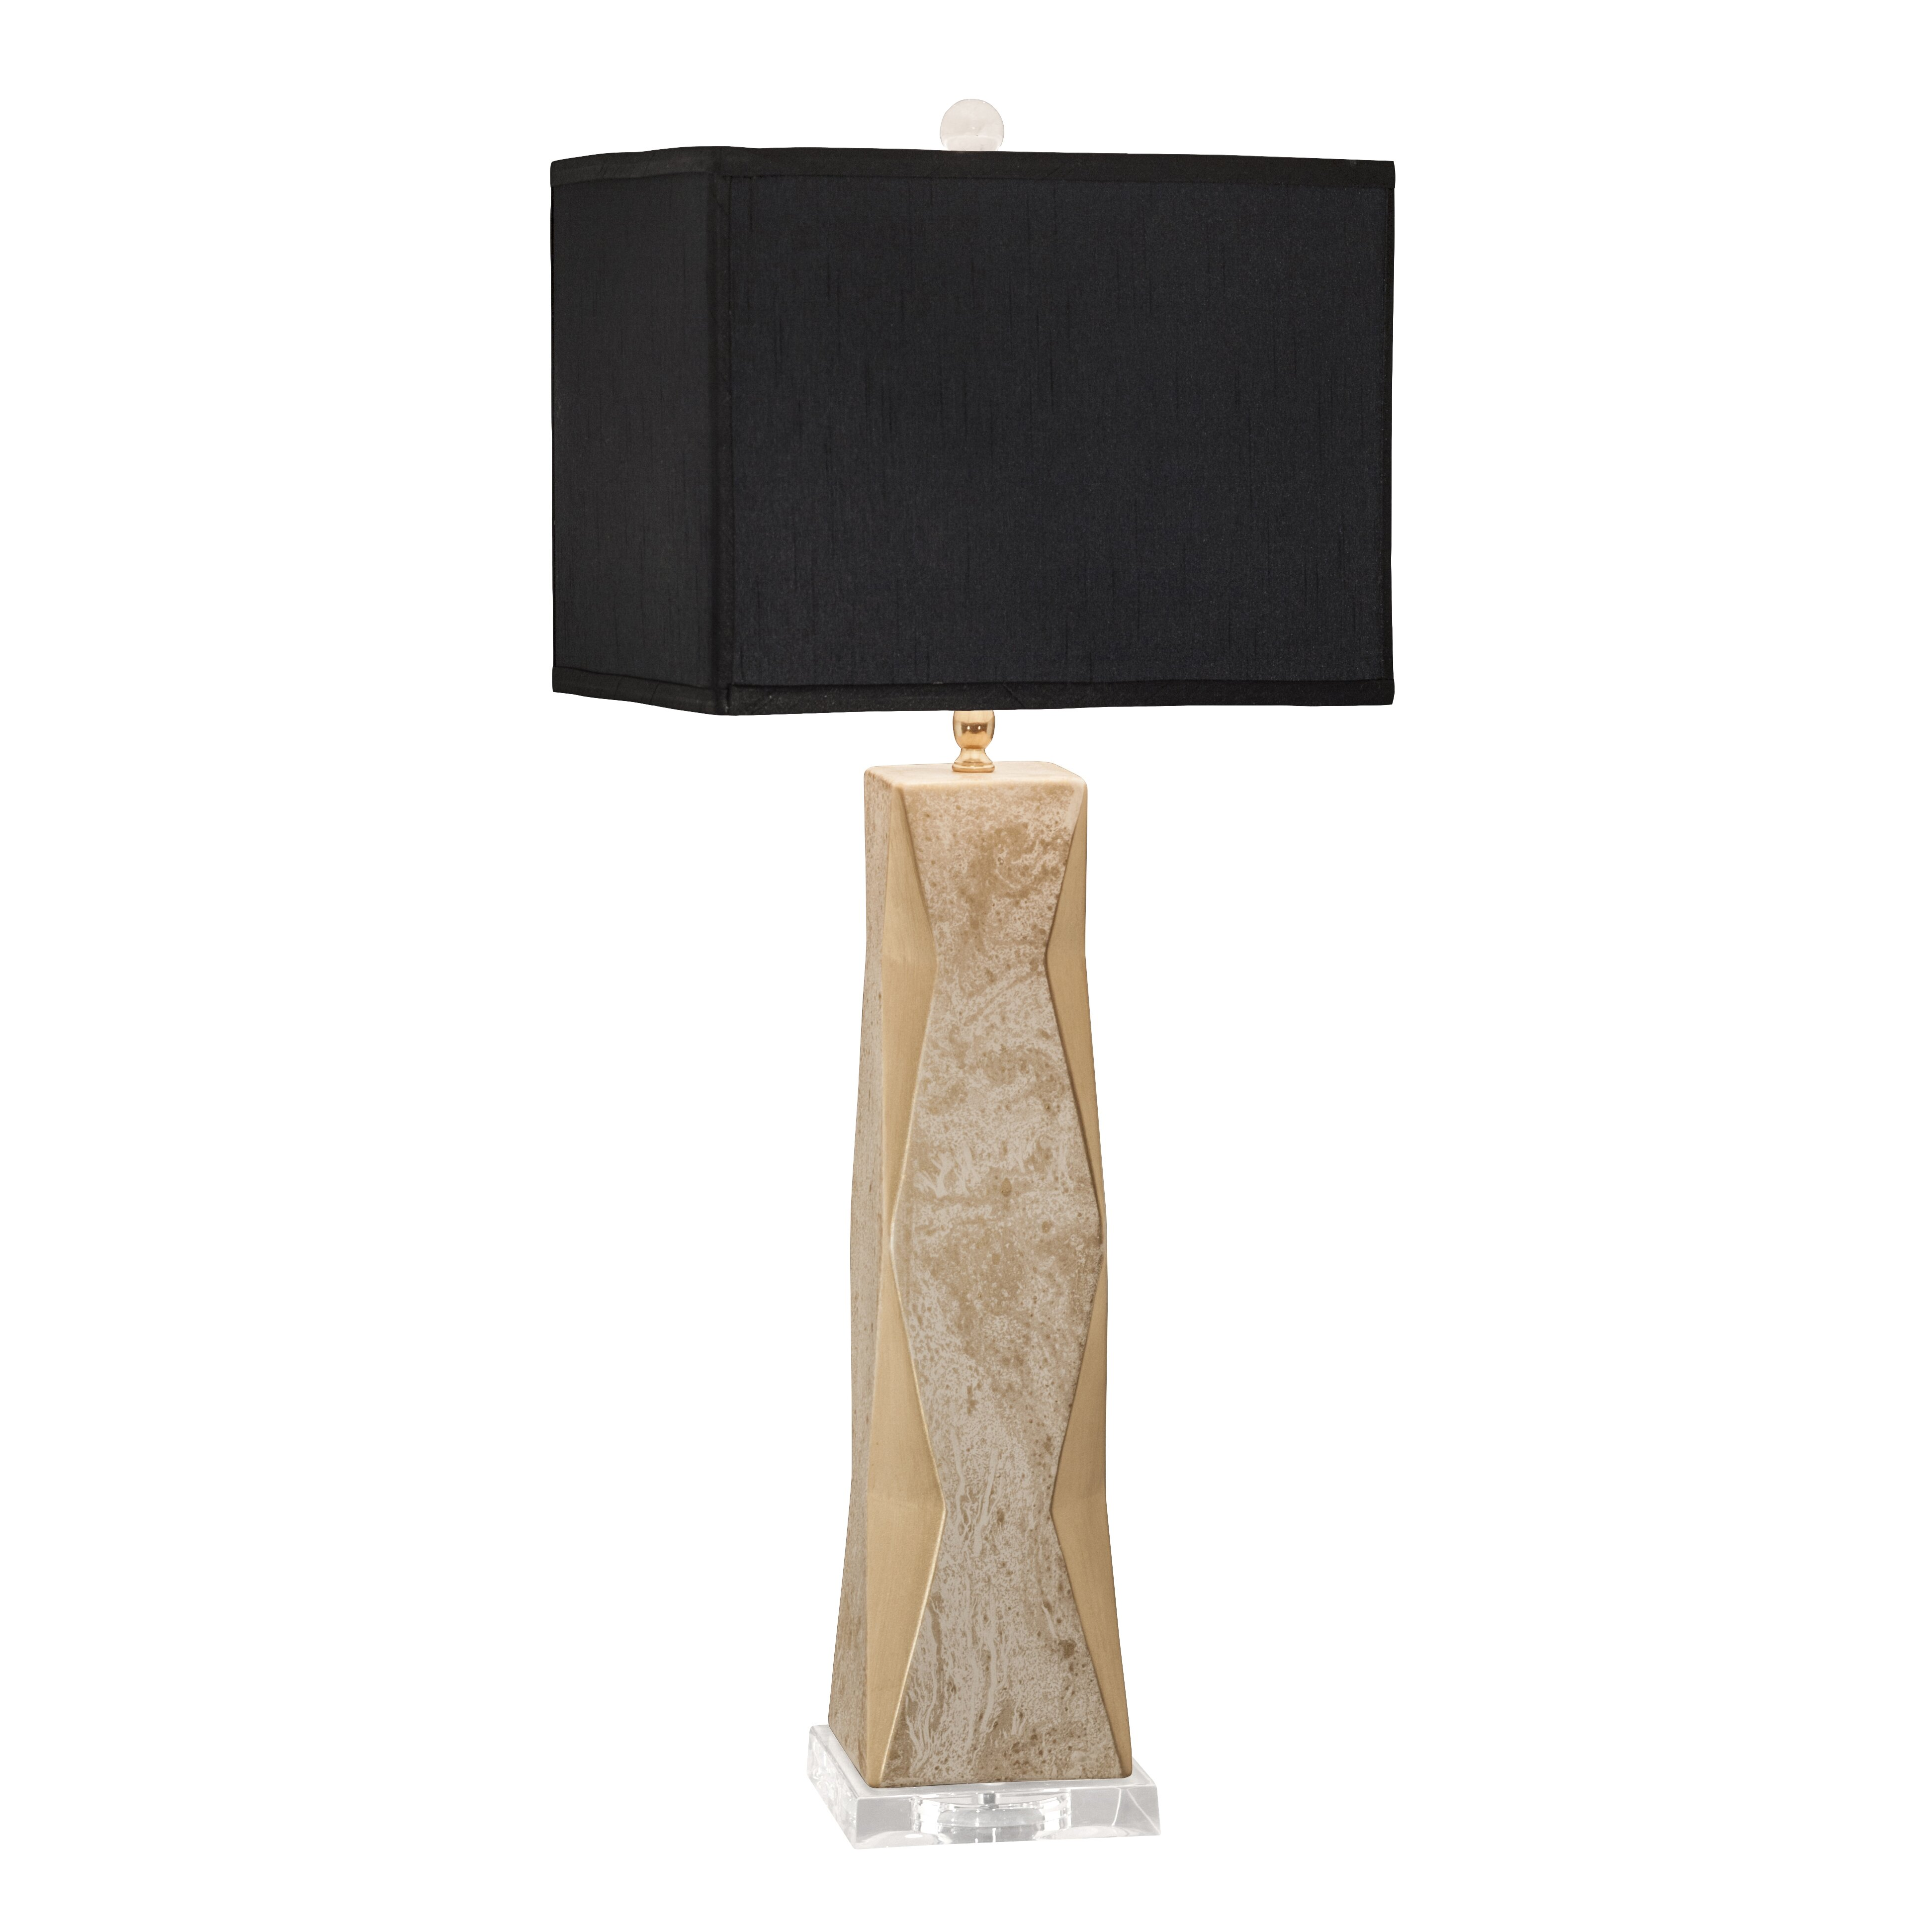 lighting lamps gold table lamps thumprints sku tbpz4301. Black Bedroom Furniture Sets. Home Design Ideas